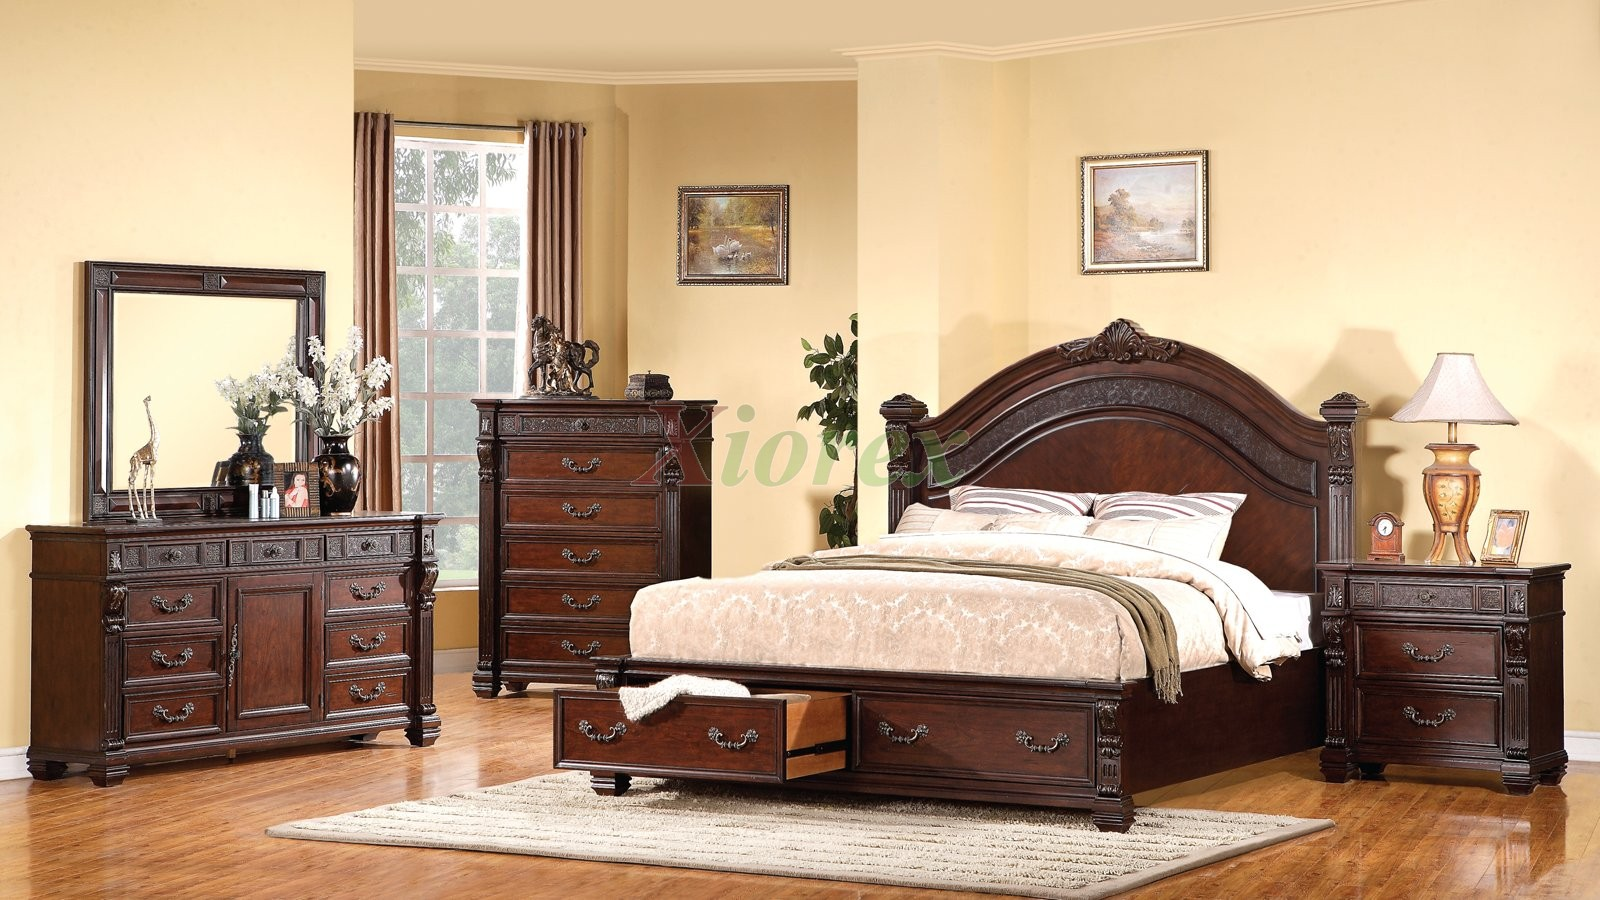 Remarkable Bedroom Furniture Sets with Storage 1600 x 900 · 333 kB · jpeg